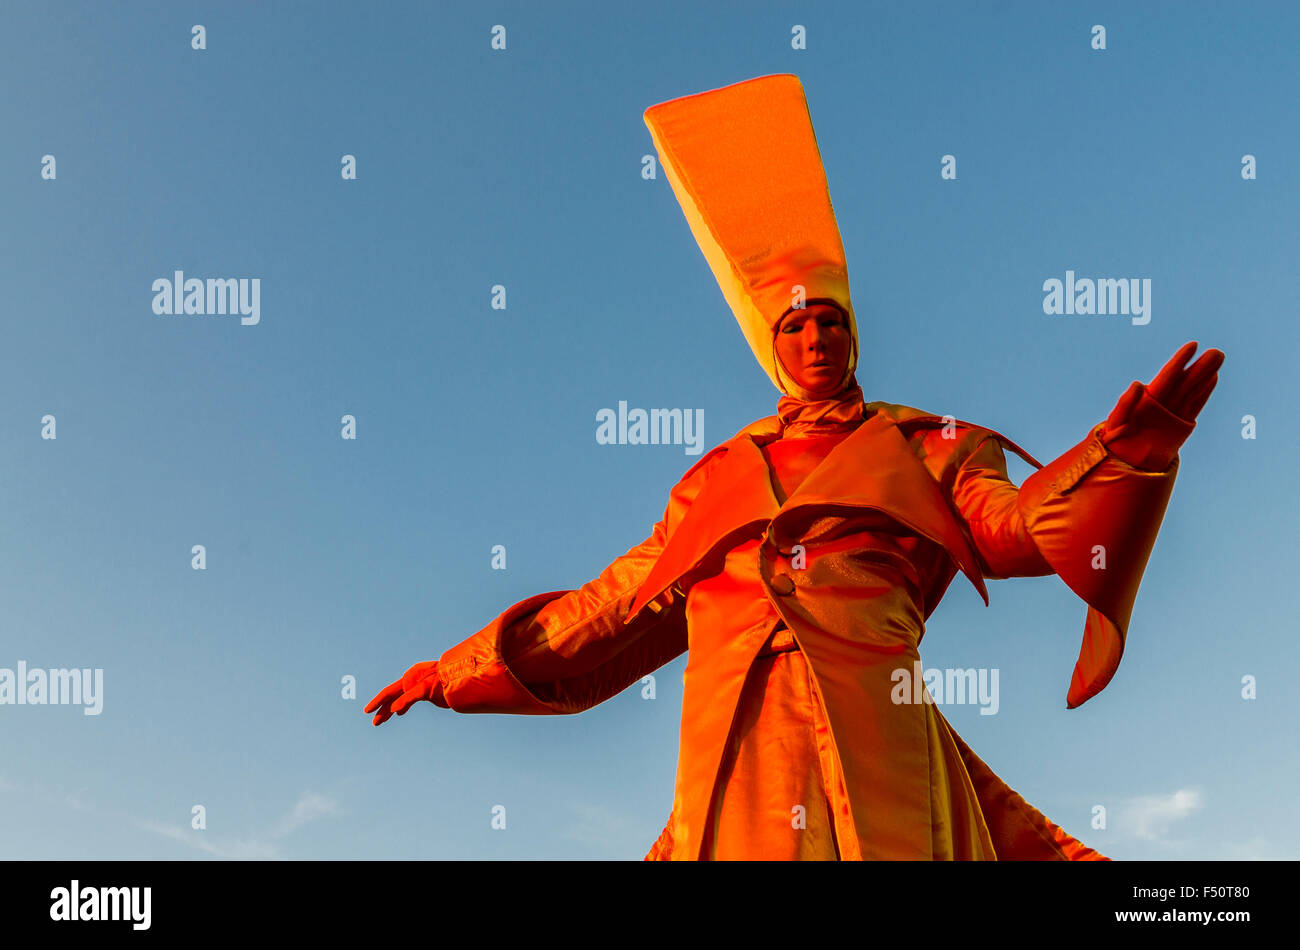 Phantasyful costumes worn by actors on stilts at Pillnitz Castle, situated 12 km out of the City at the river Elbe - Stock Image